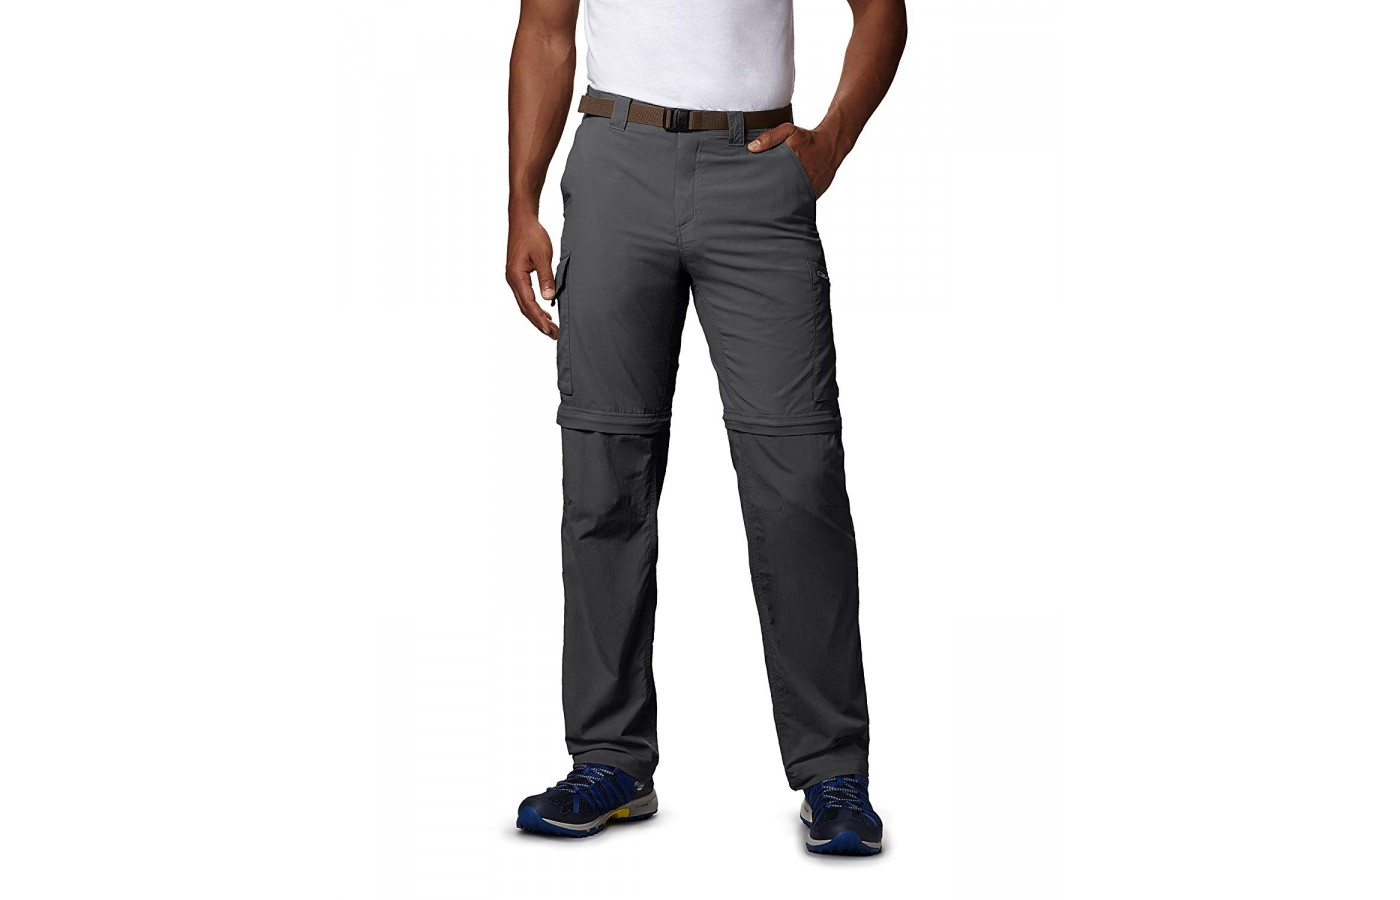 The Columbia Silver Ridge Convertible Pants and thin and lightweight.